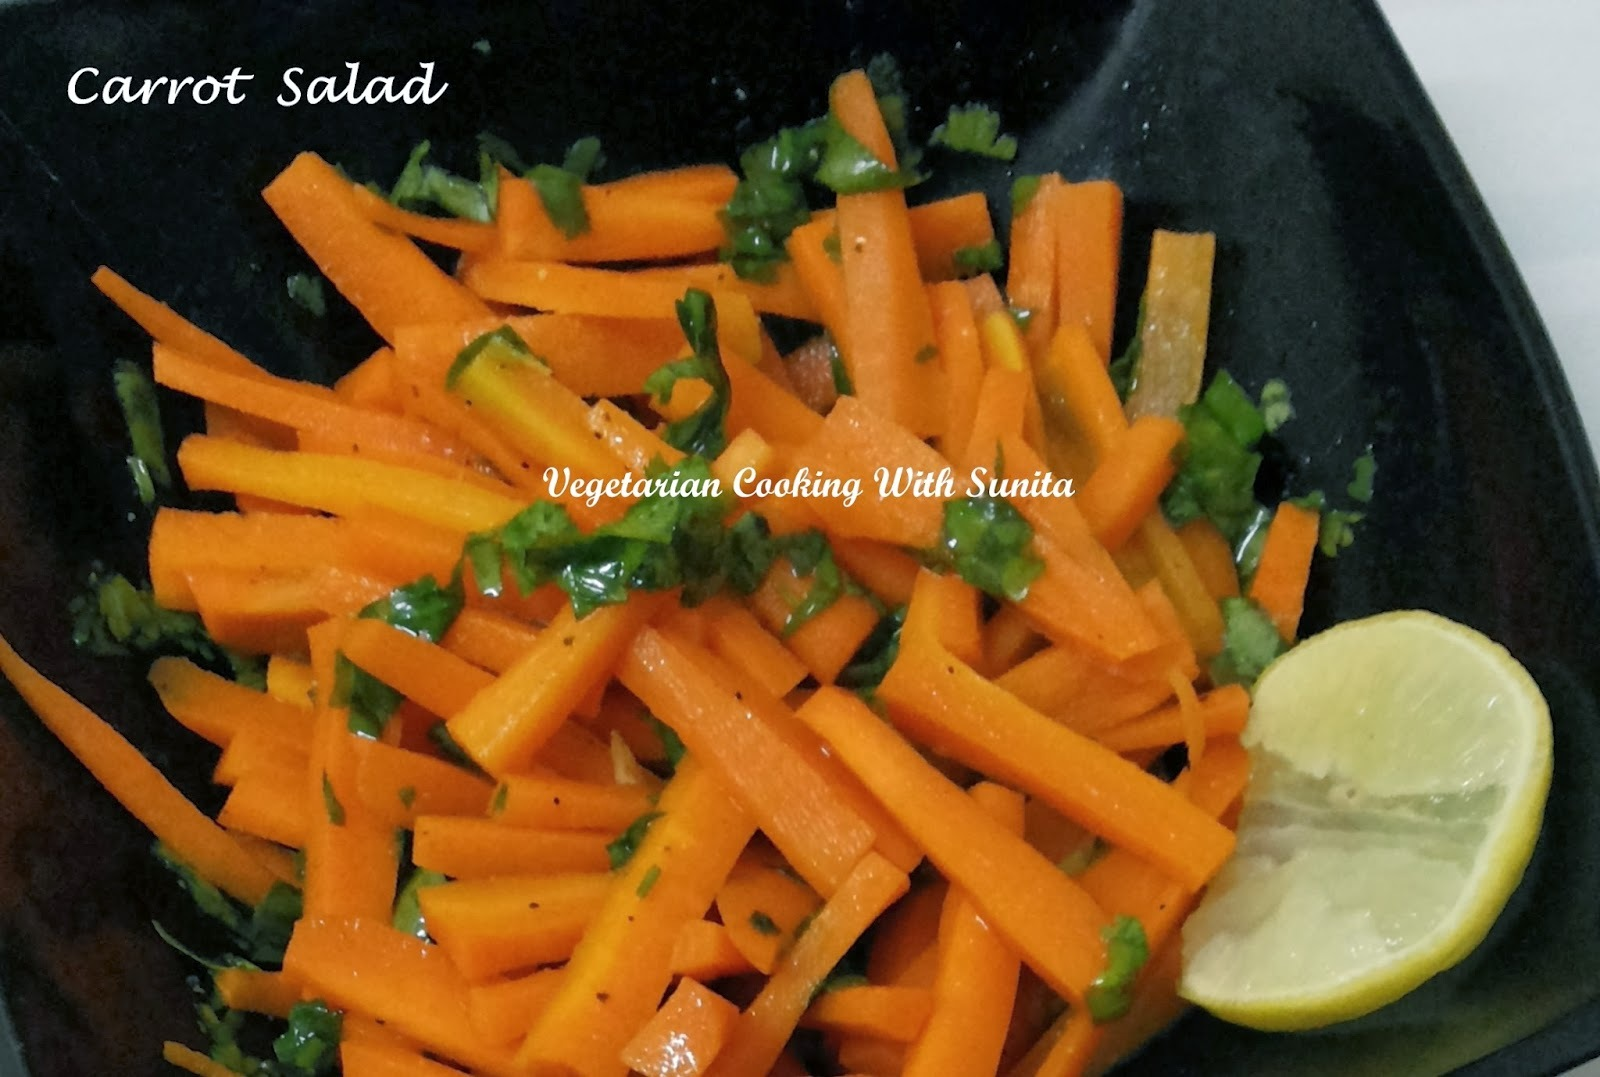 Warm Carrot-basil salad